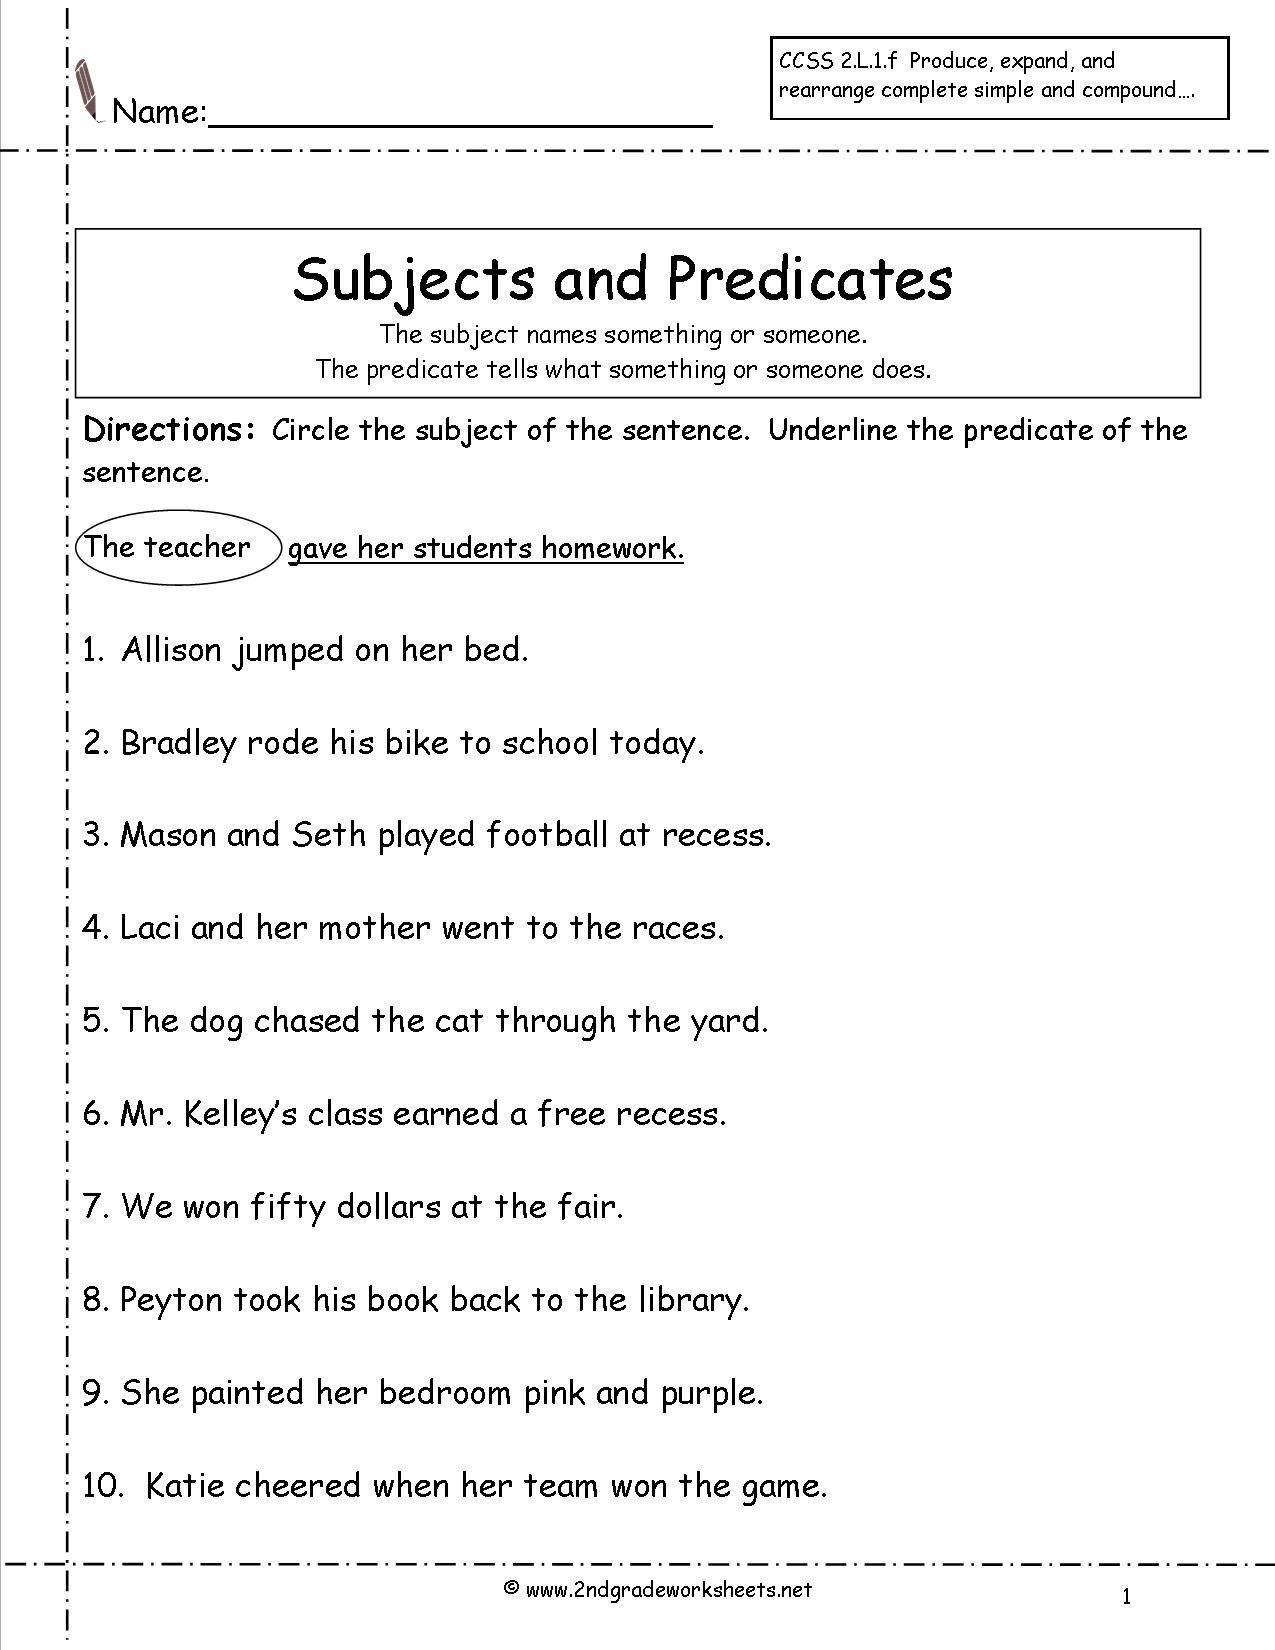 Second Grade Sentences Worksheets Ccss 2 L 1 F Worksheets